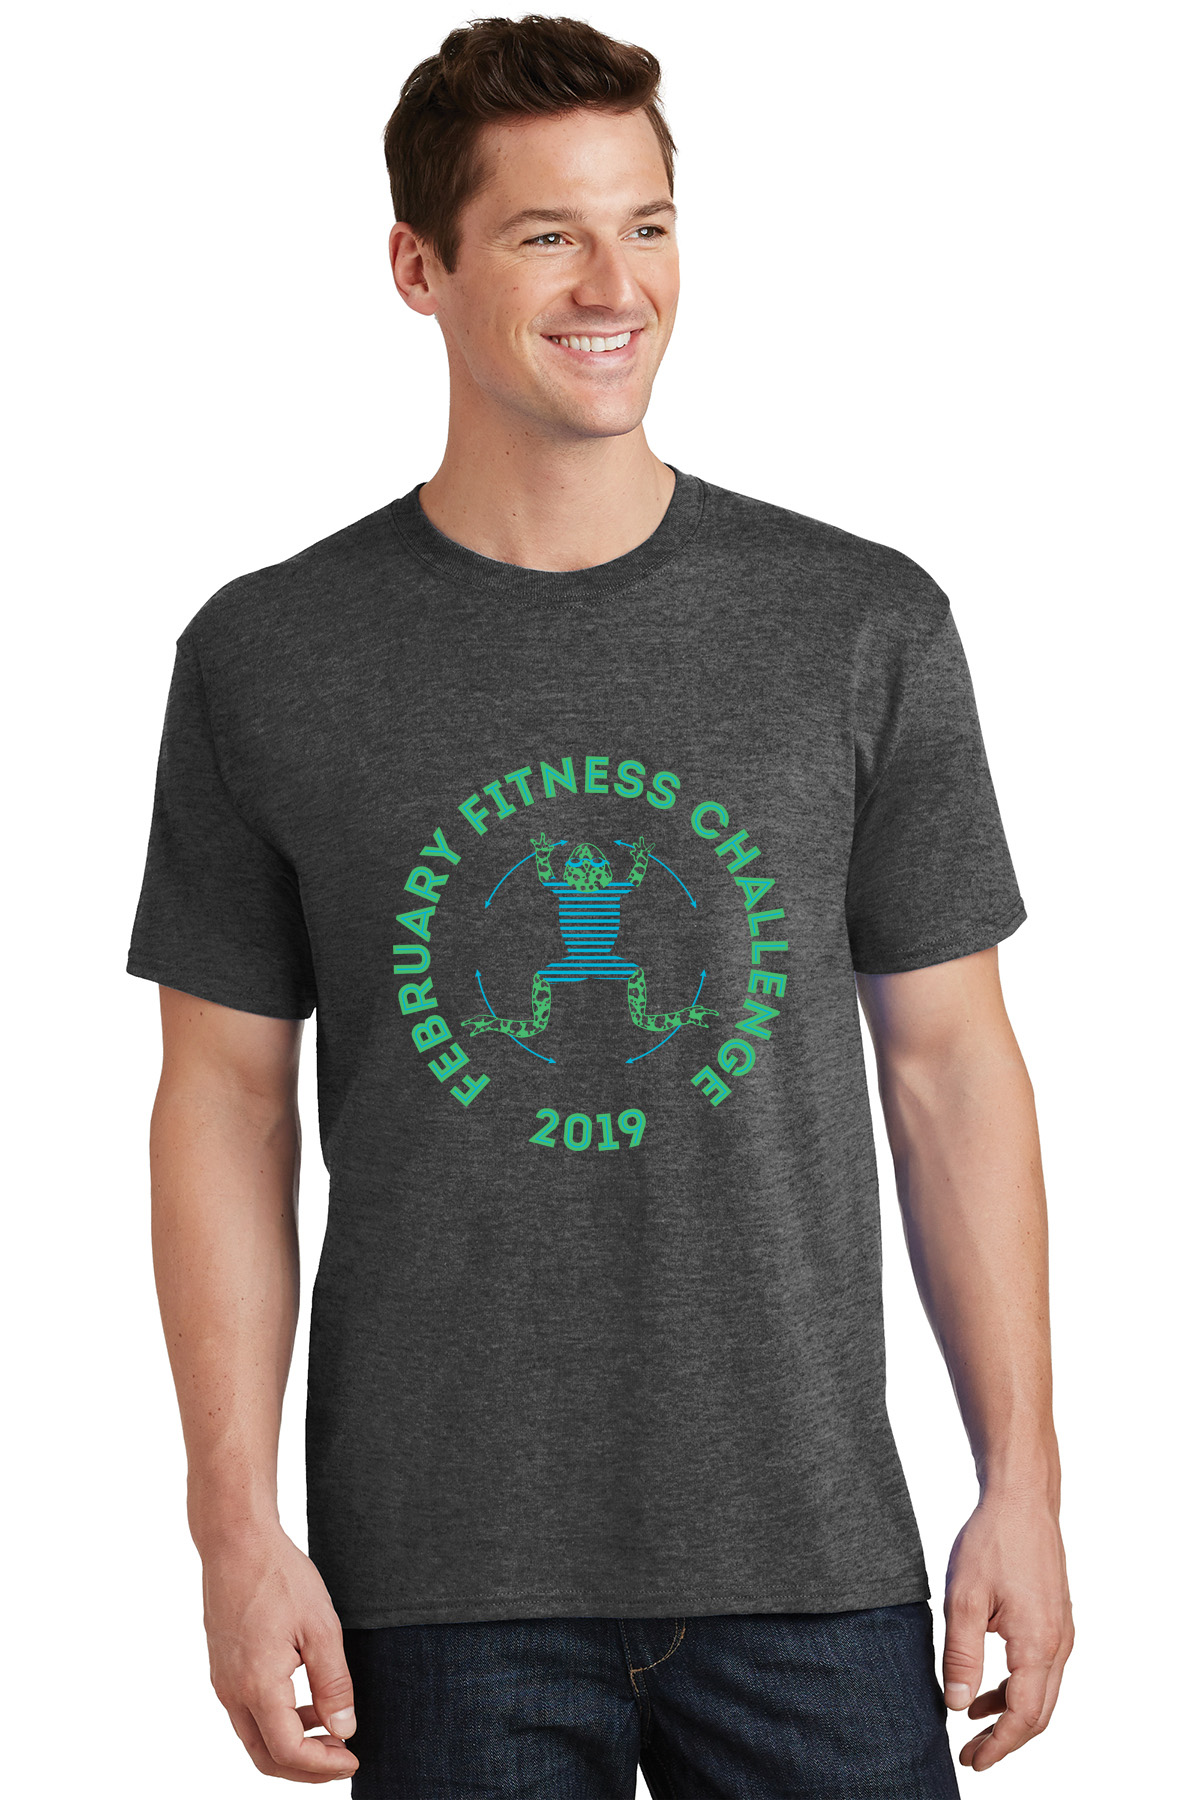 Available for purchase in long or short sleeve. See pricing on entry form.